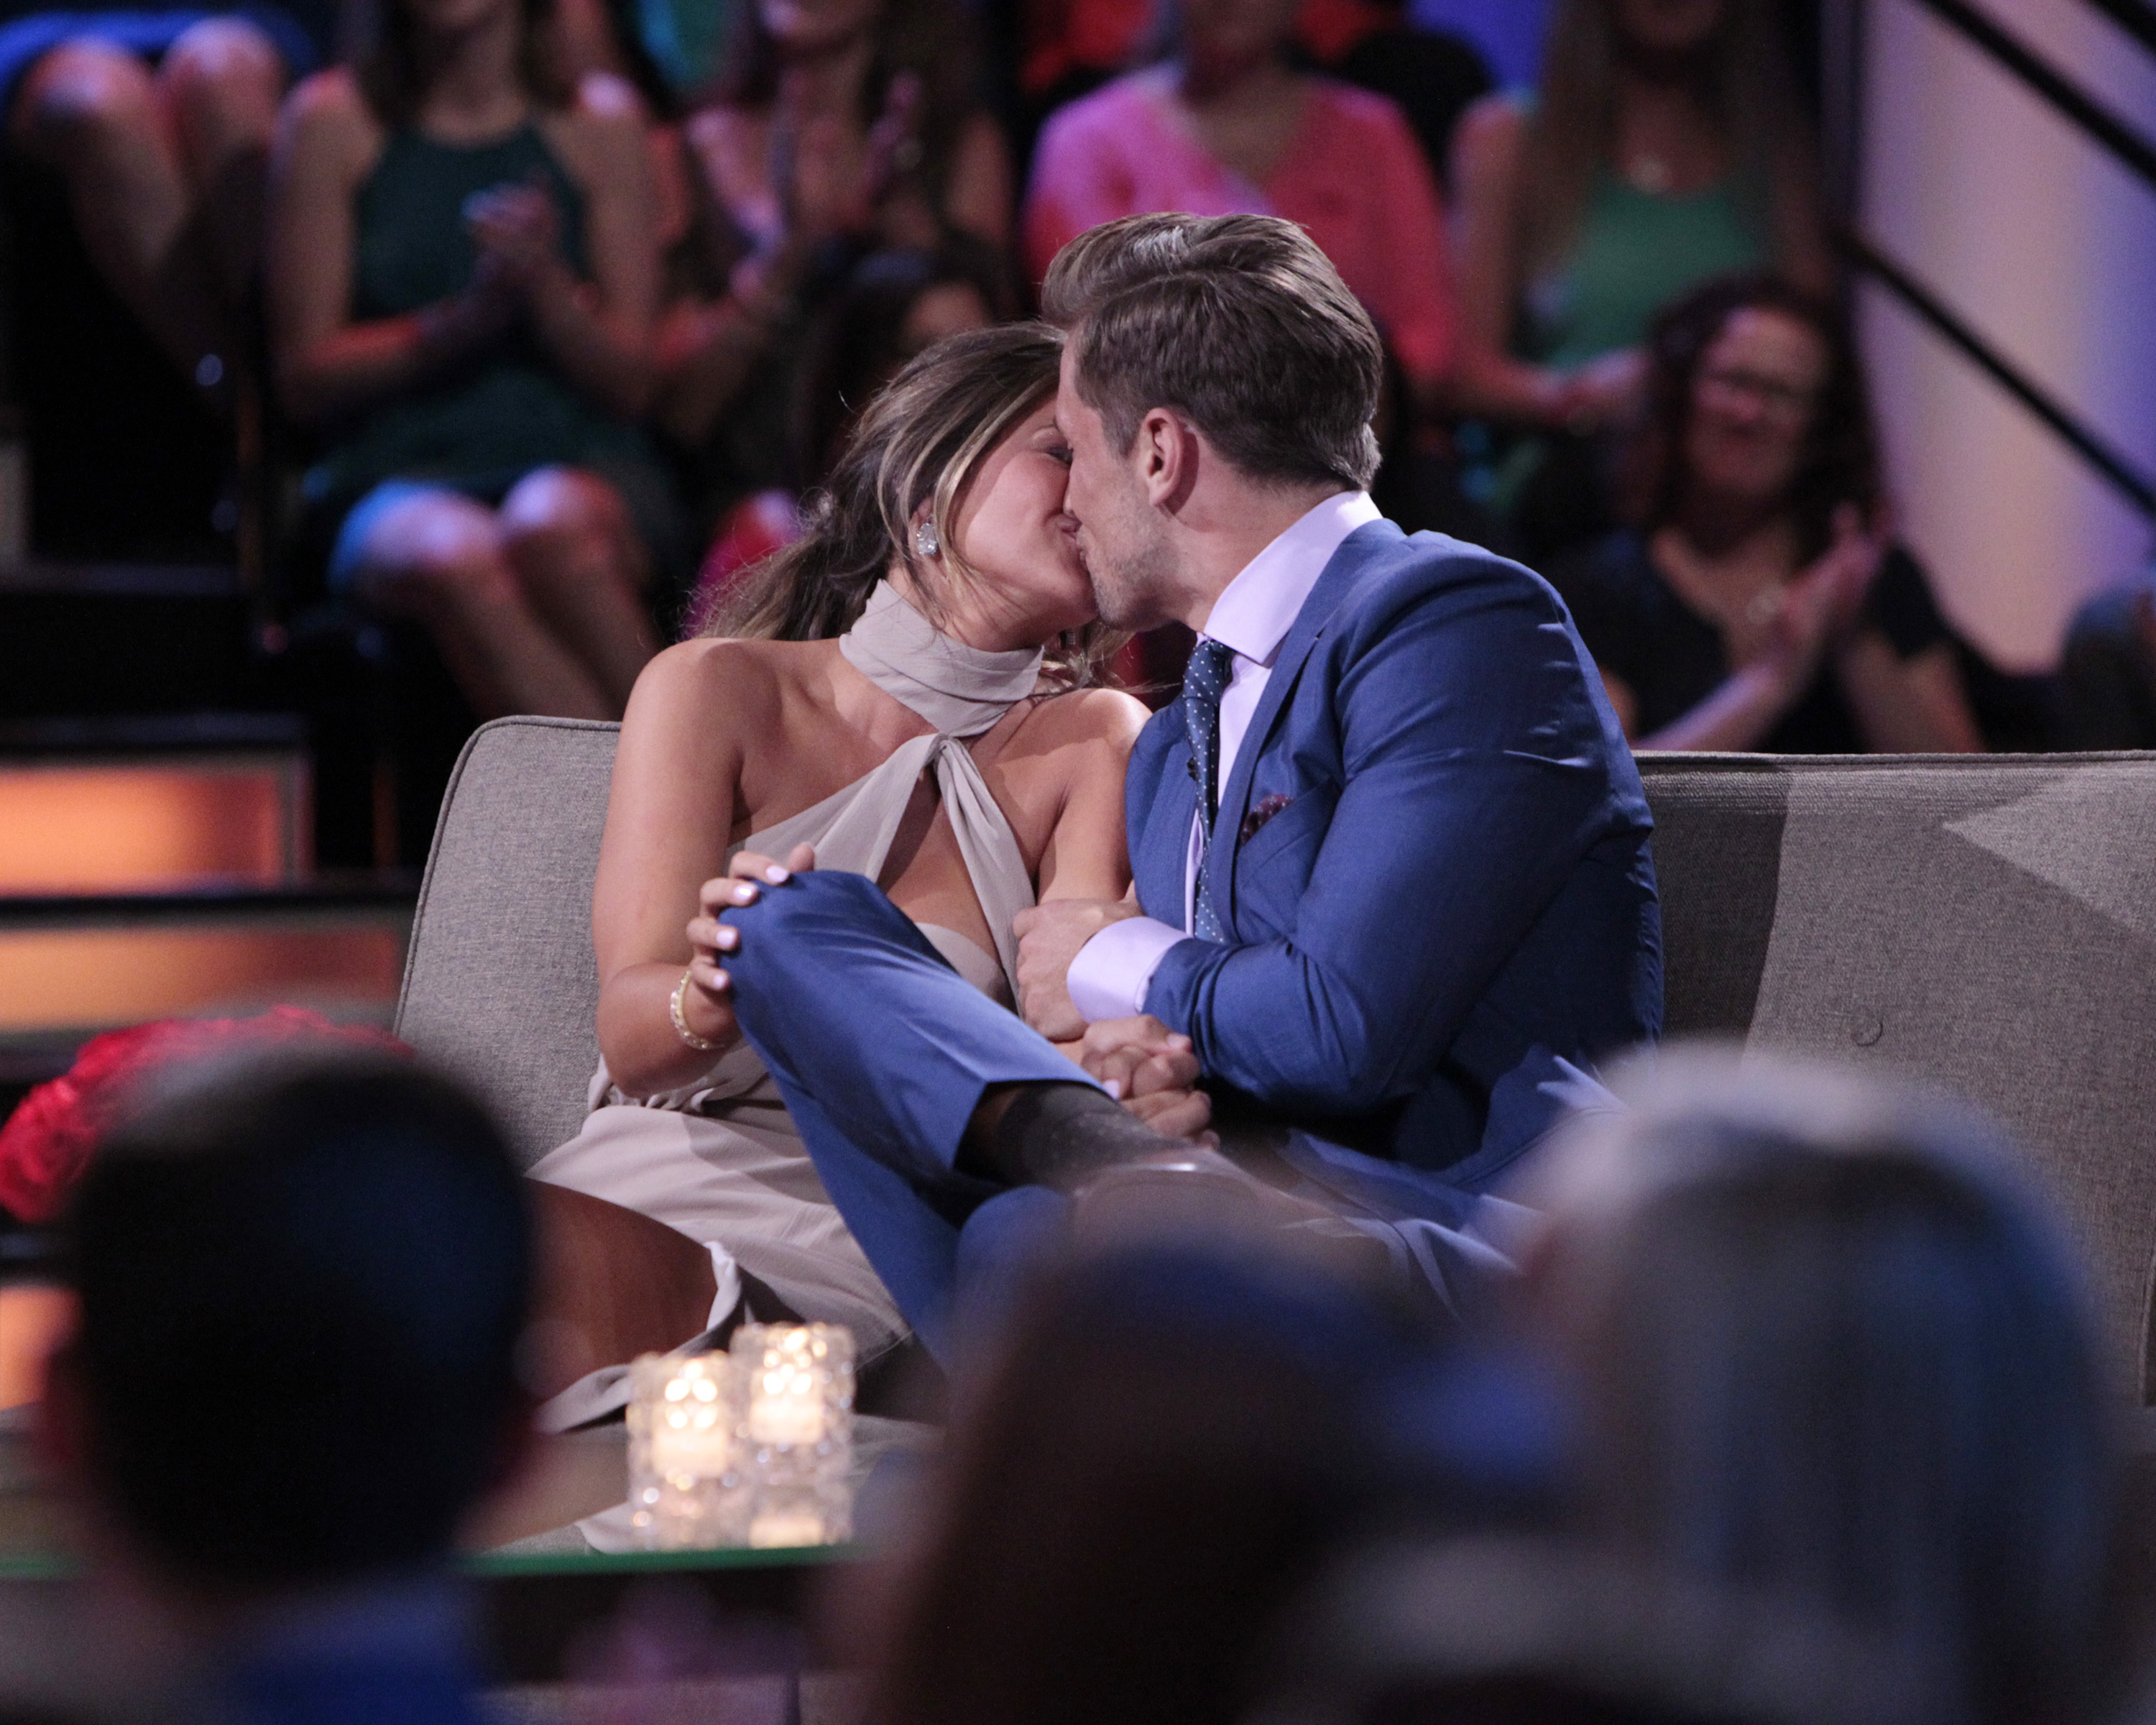 """THE BACHELORETTE - """"After the Final Rose""""- Emotions run high as JoJo sits down with Chris Harrison, live, to talk about her two final bachelors from this season - Jordan and Robby. She takes viewers back to those final days in exotic Phuket, Thailand, when she needed to make her life-changing decision. Both men return to sit with JoJo and discuss the shocking outcome of the show and their relationships. It's the unpredictable ending to JoJo's adventure to find true love on """"The Bachelorette: After the Final Rose,"""" MONDAY, AUGUST 1 (10:00-11:00 p.m. EDT). (ABC/Rick Rowell) JOJO FLETCHER, JORDAN RODGERS"""